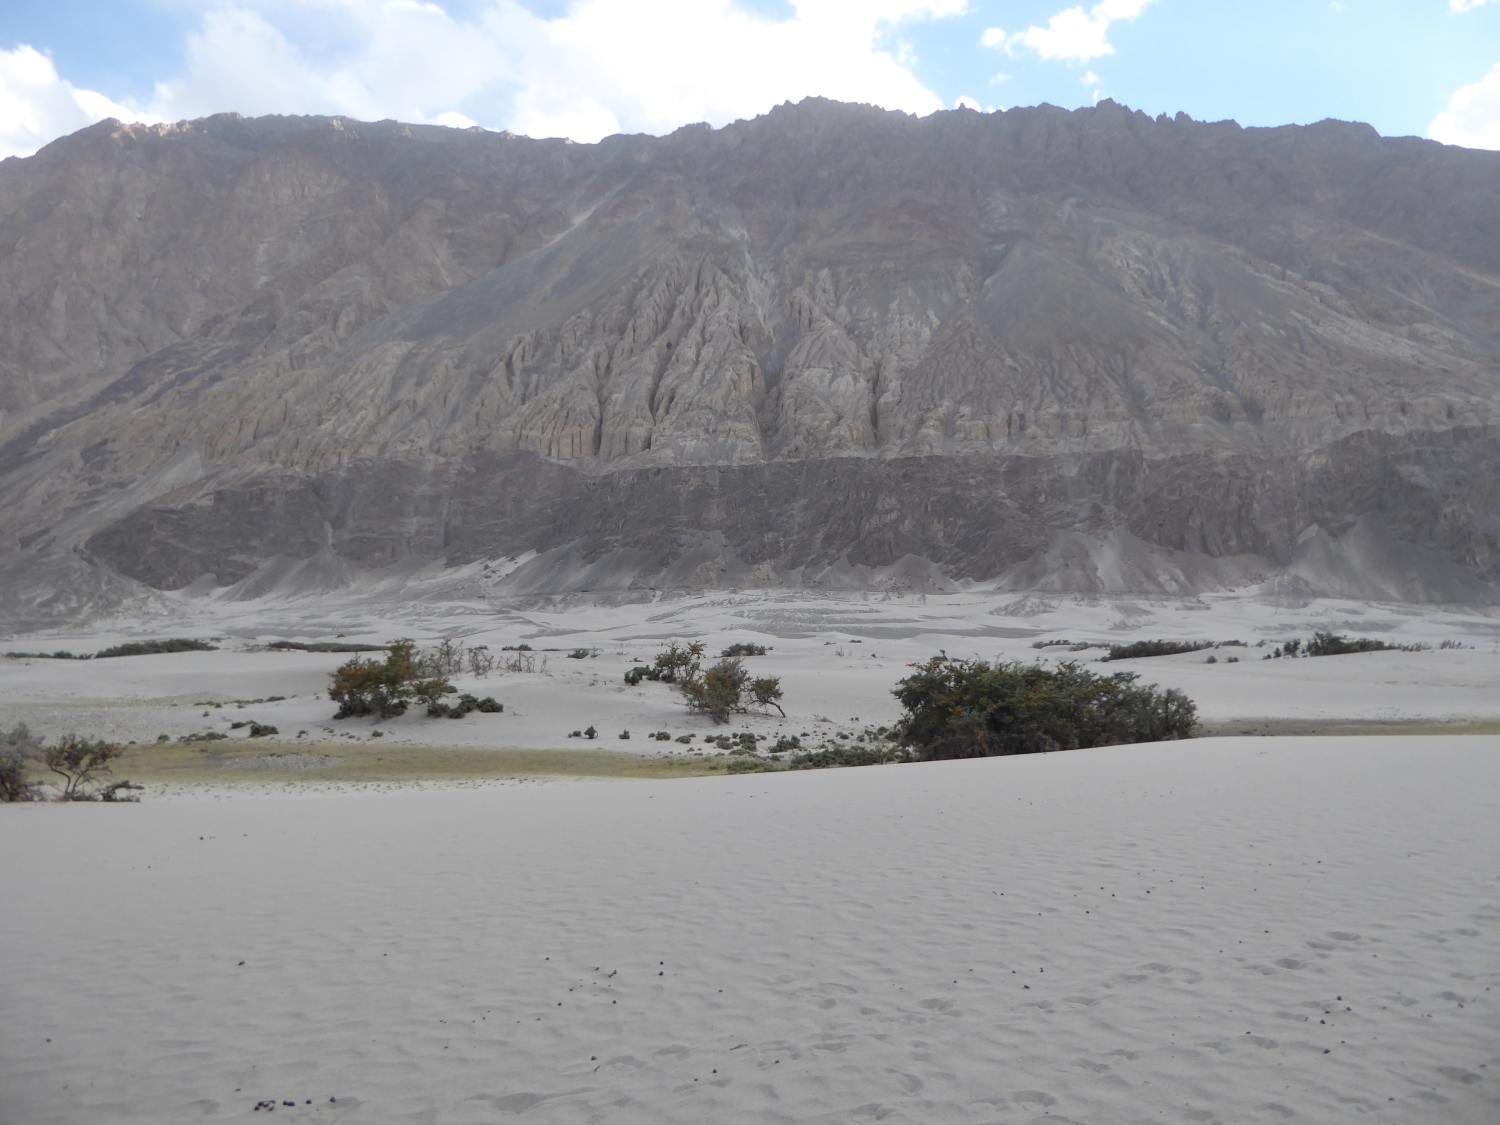 The dunes are a legacy of the river